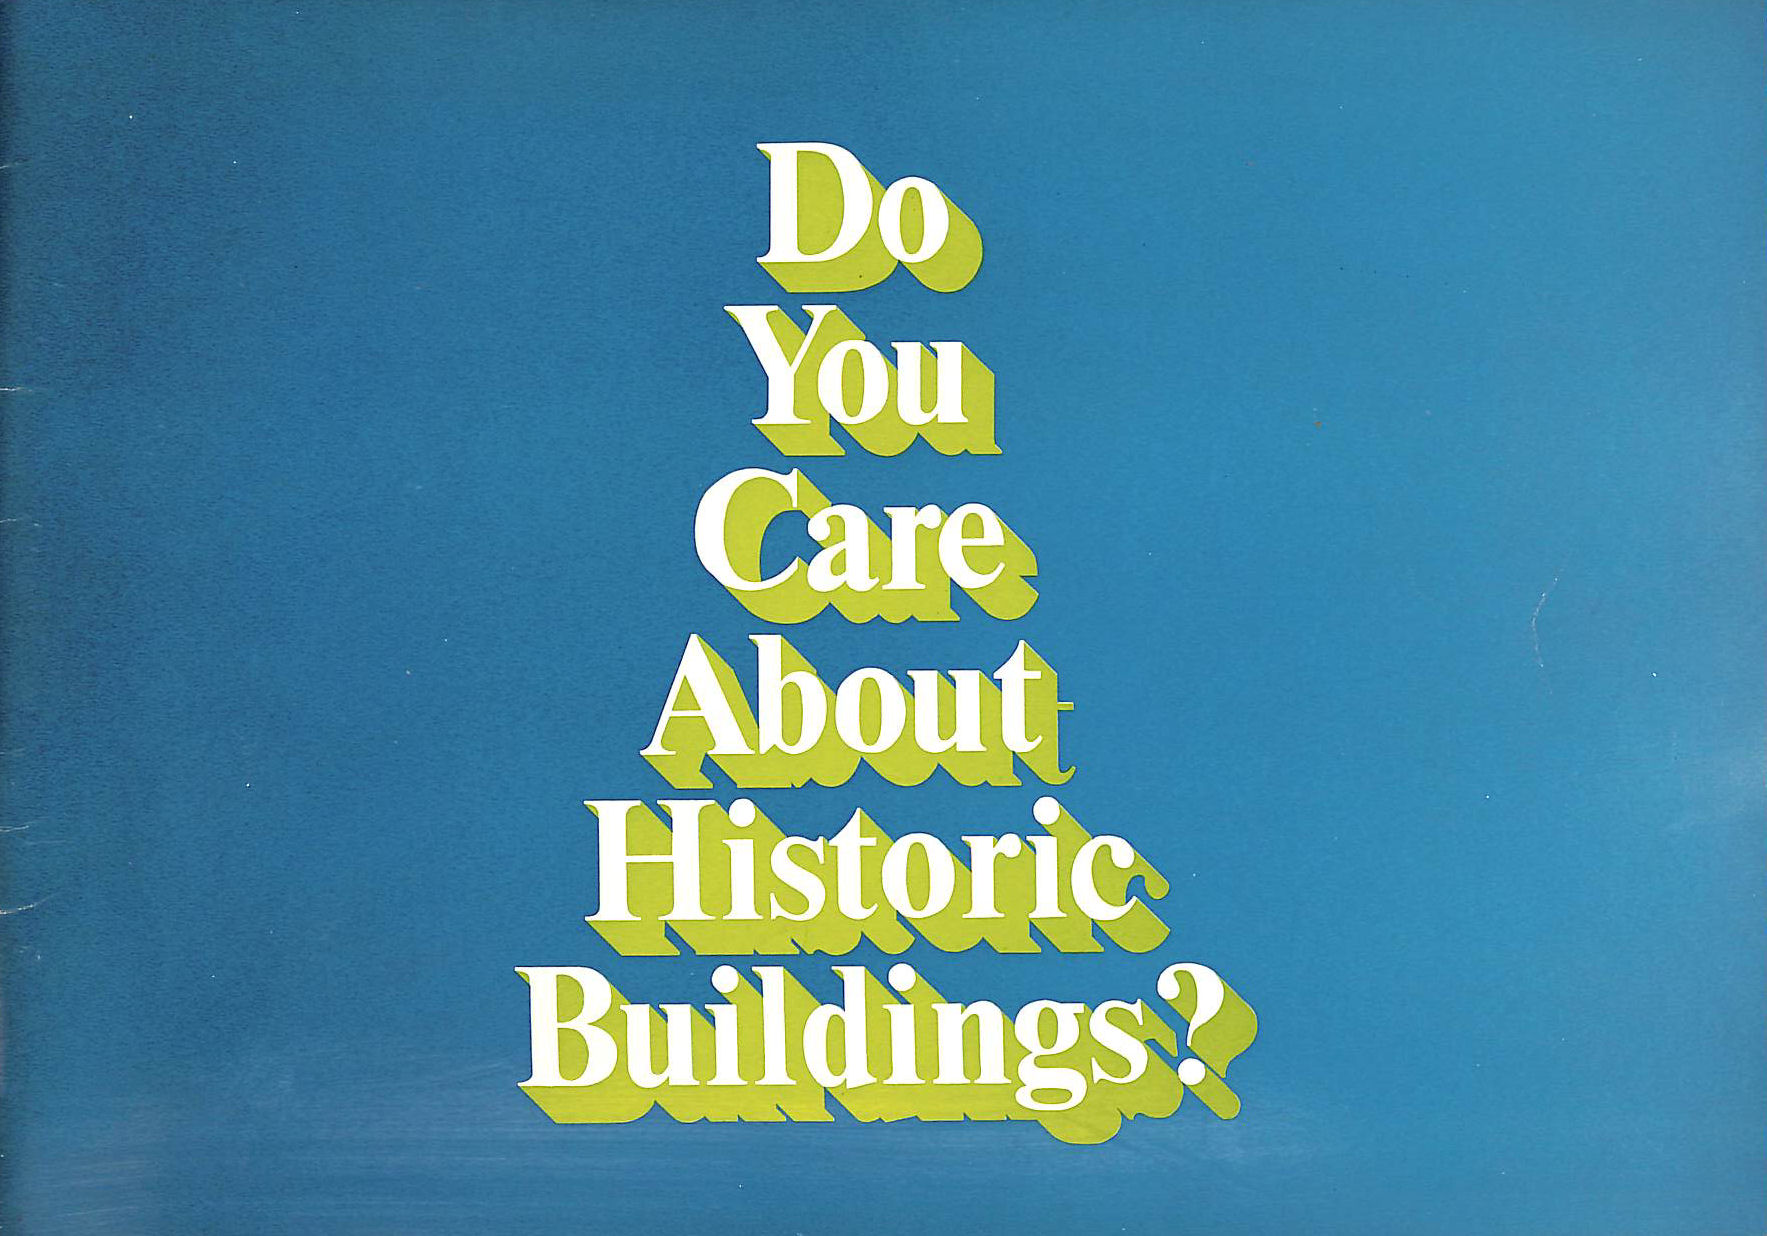 Image for Do You Care About Historic Buildings? The Work of the Historic Buildings Board of the Greater London